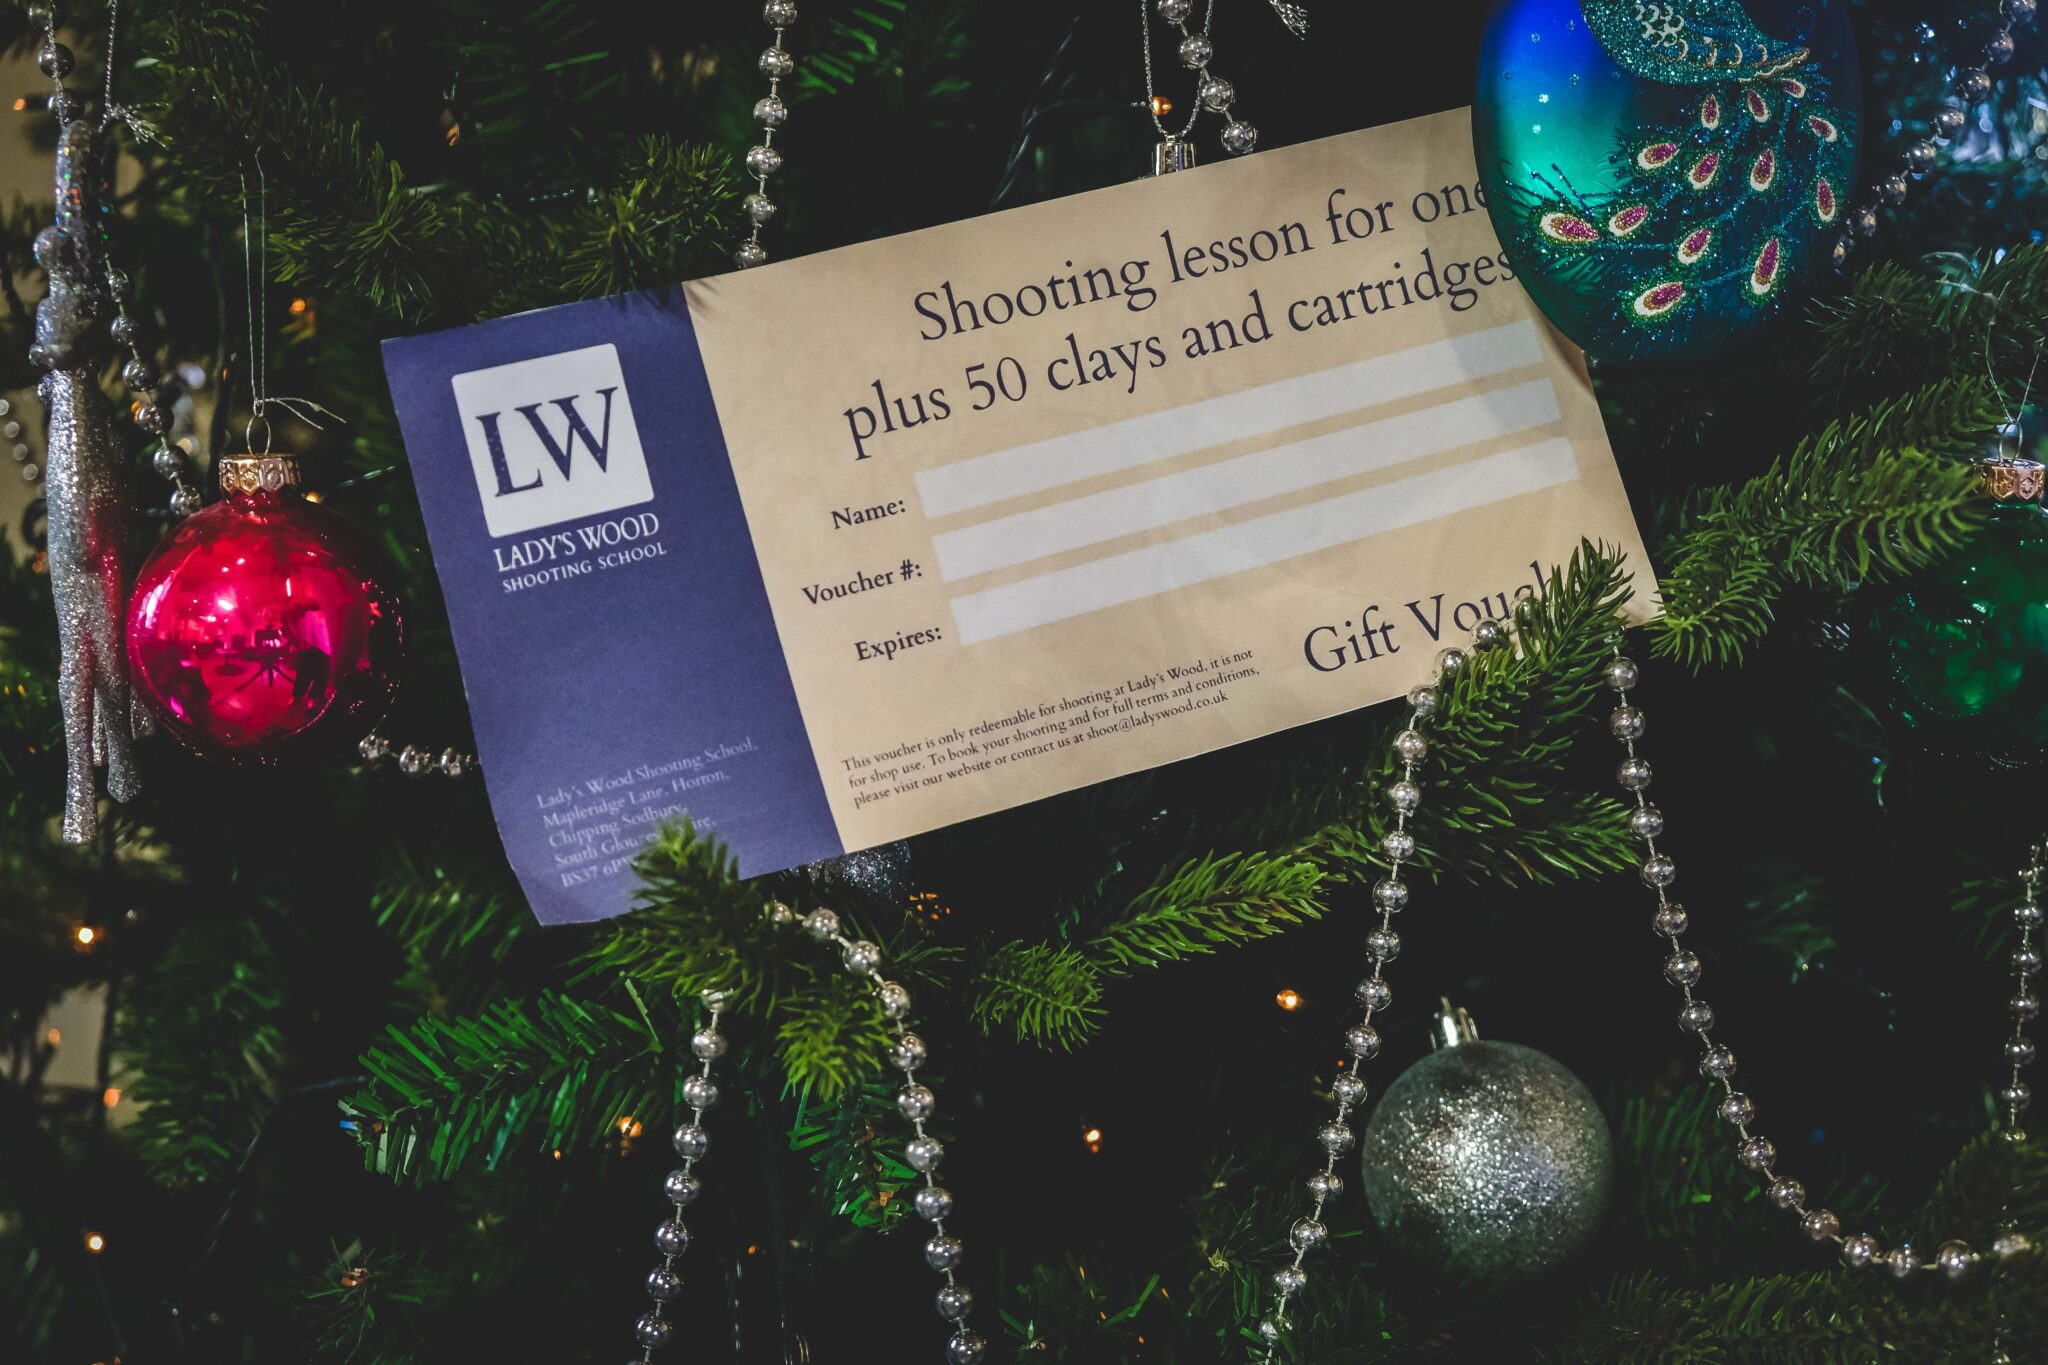 Lady's Wood christmas gift voucher